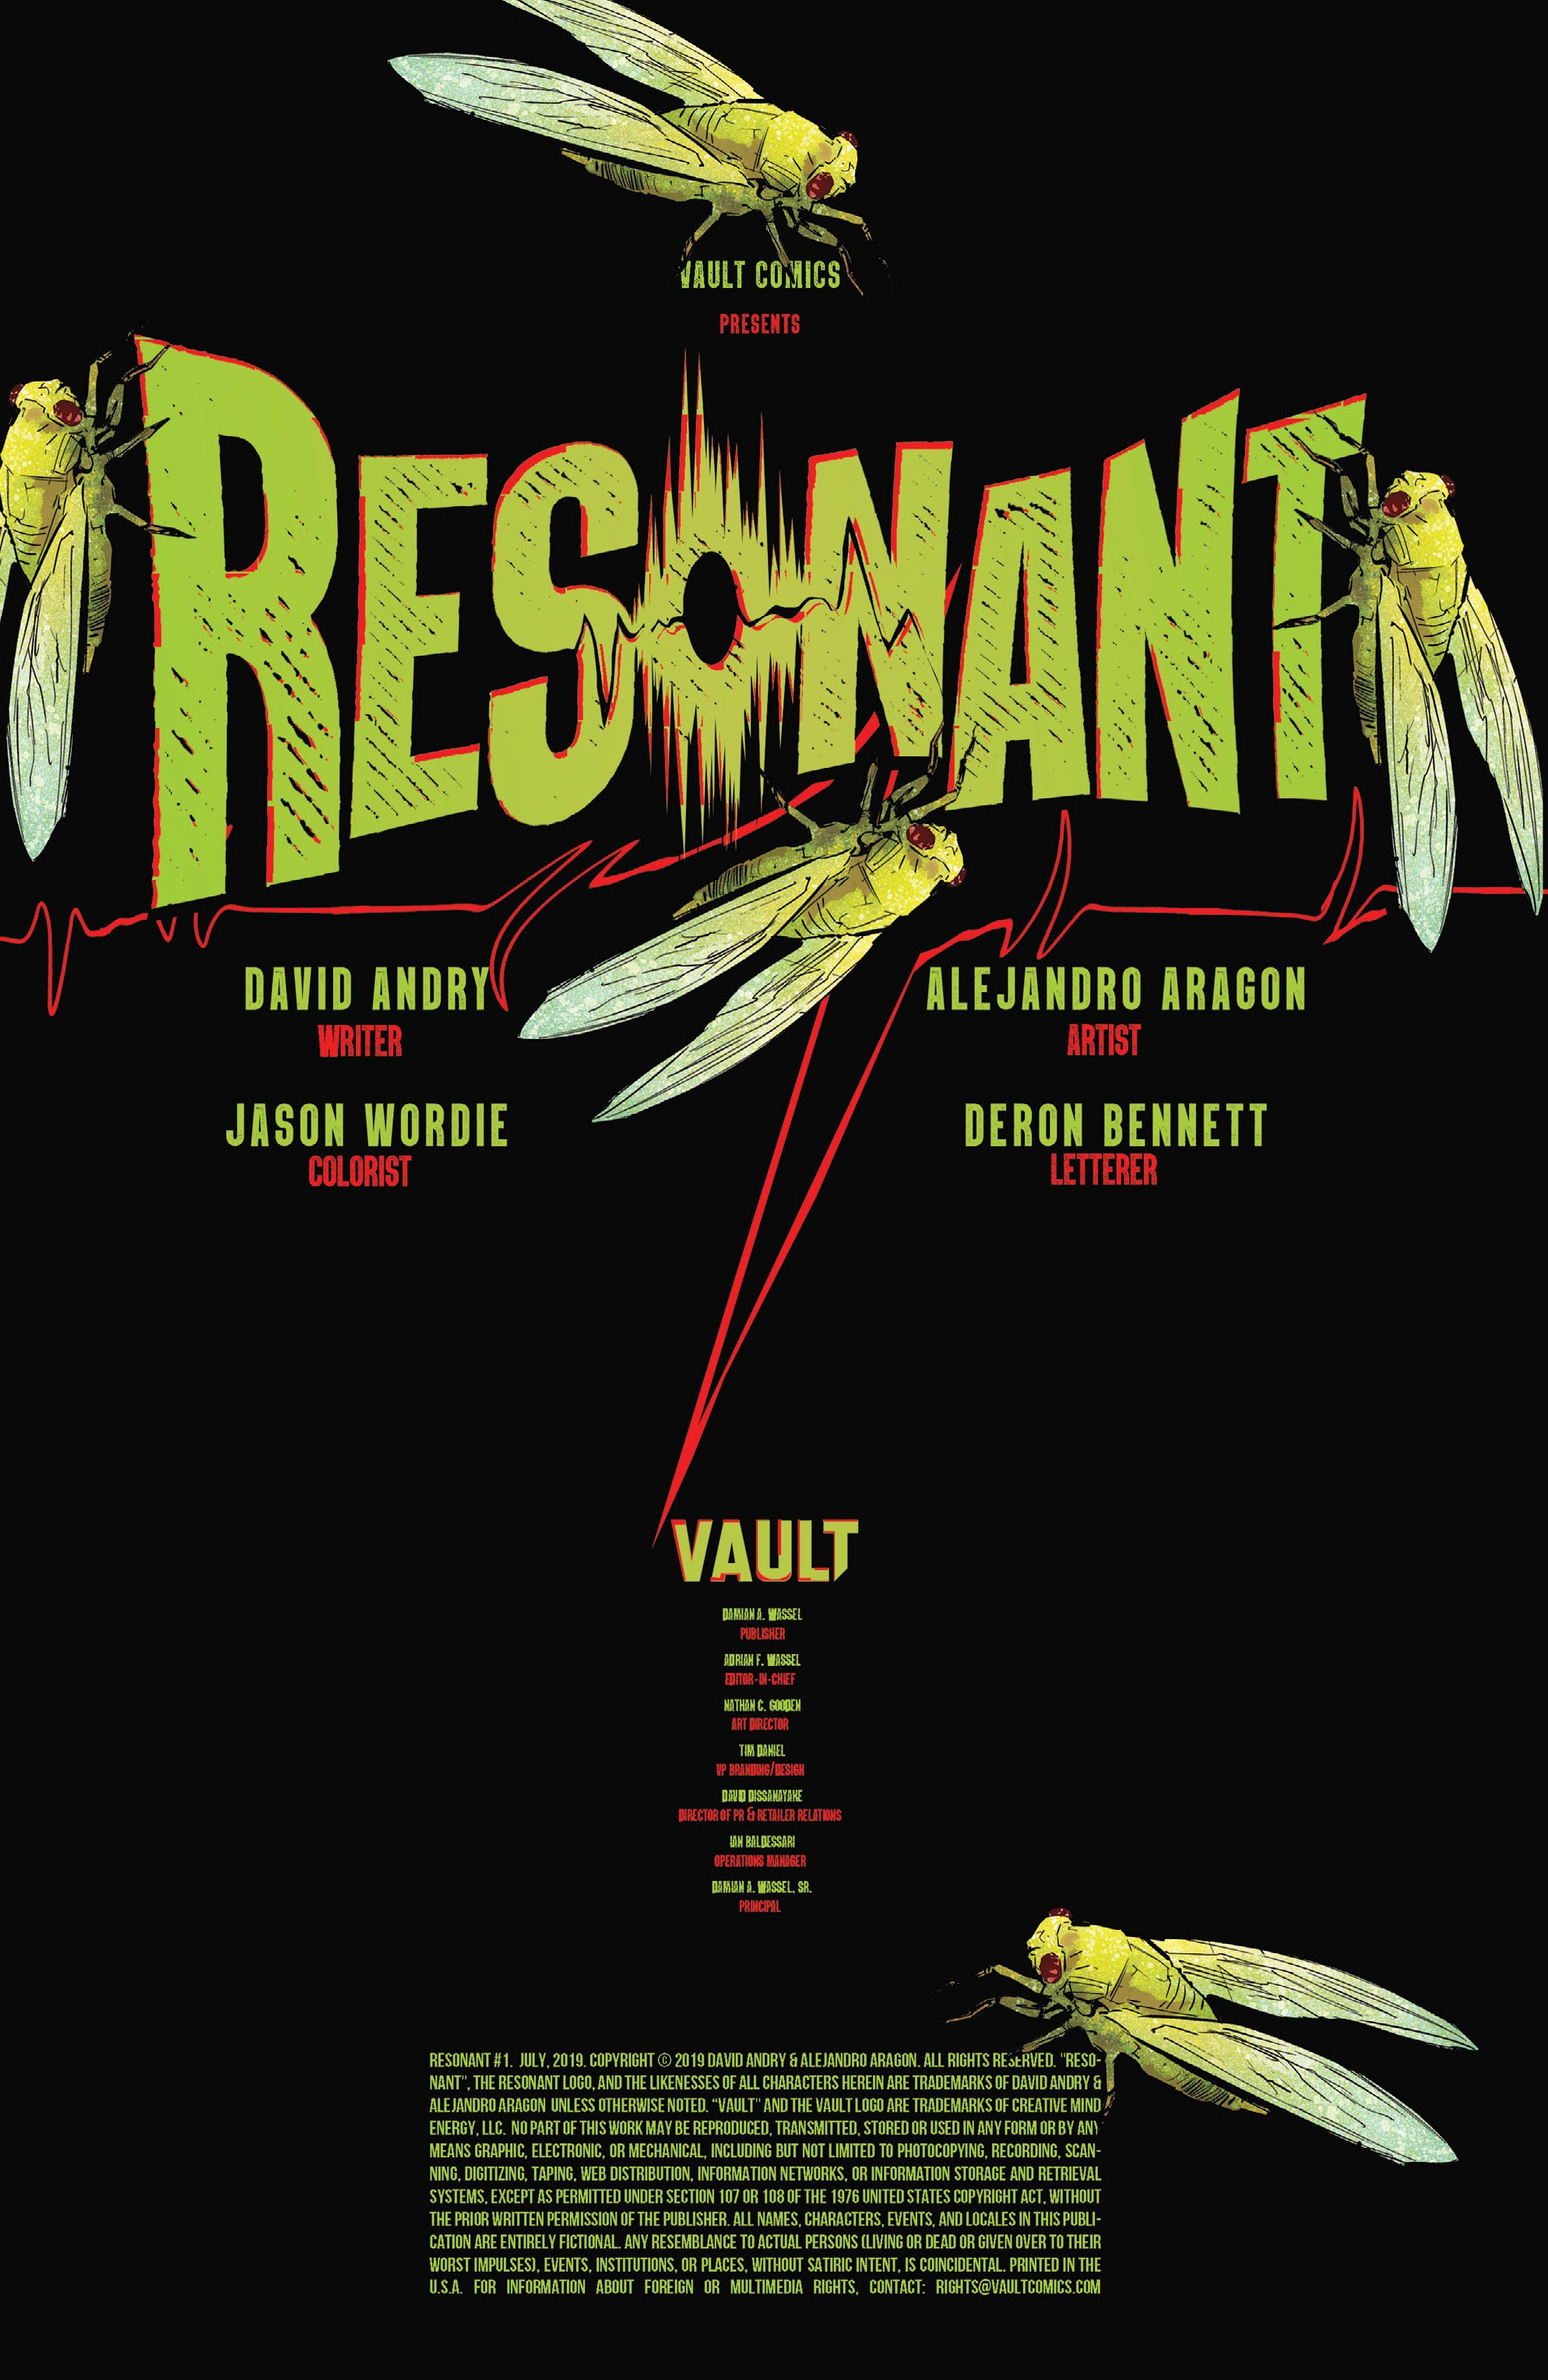 Read online Resonant comic -  Issue #1 - 2